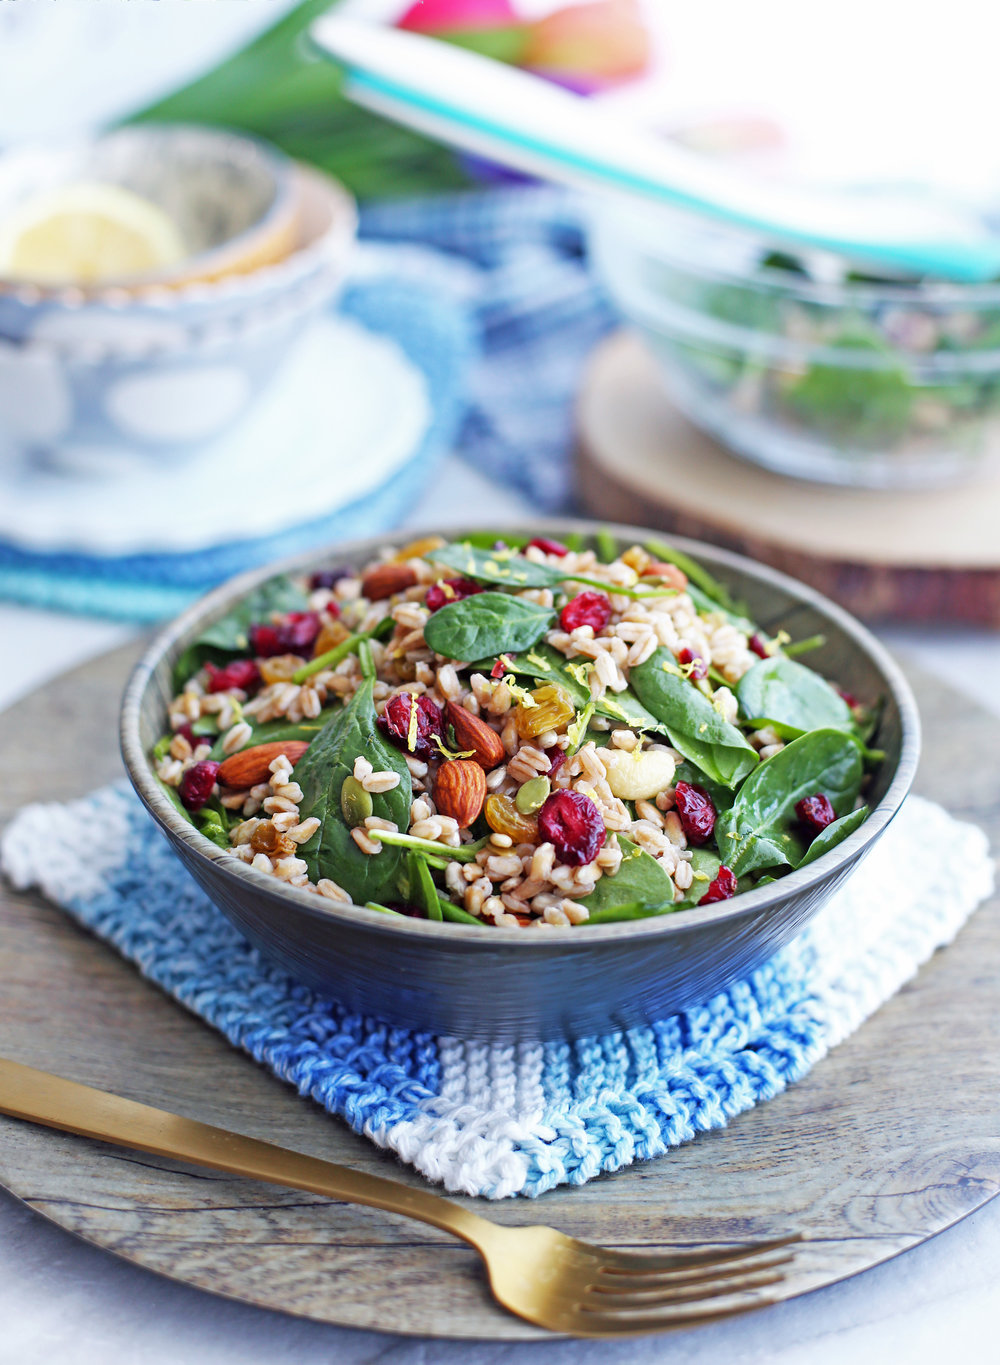 Farro and Spinach Salad with Dried Fruit and Nuts in a wooden bowl; fork in front of the bowl.